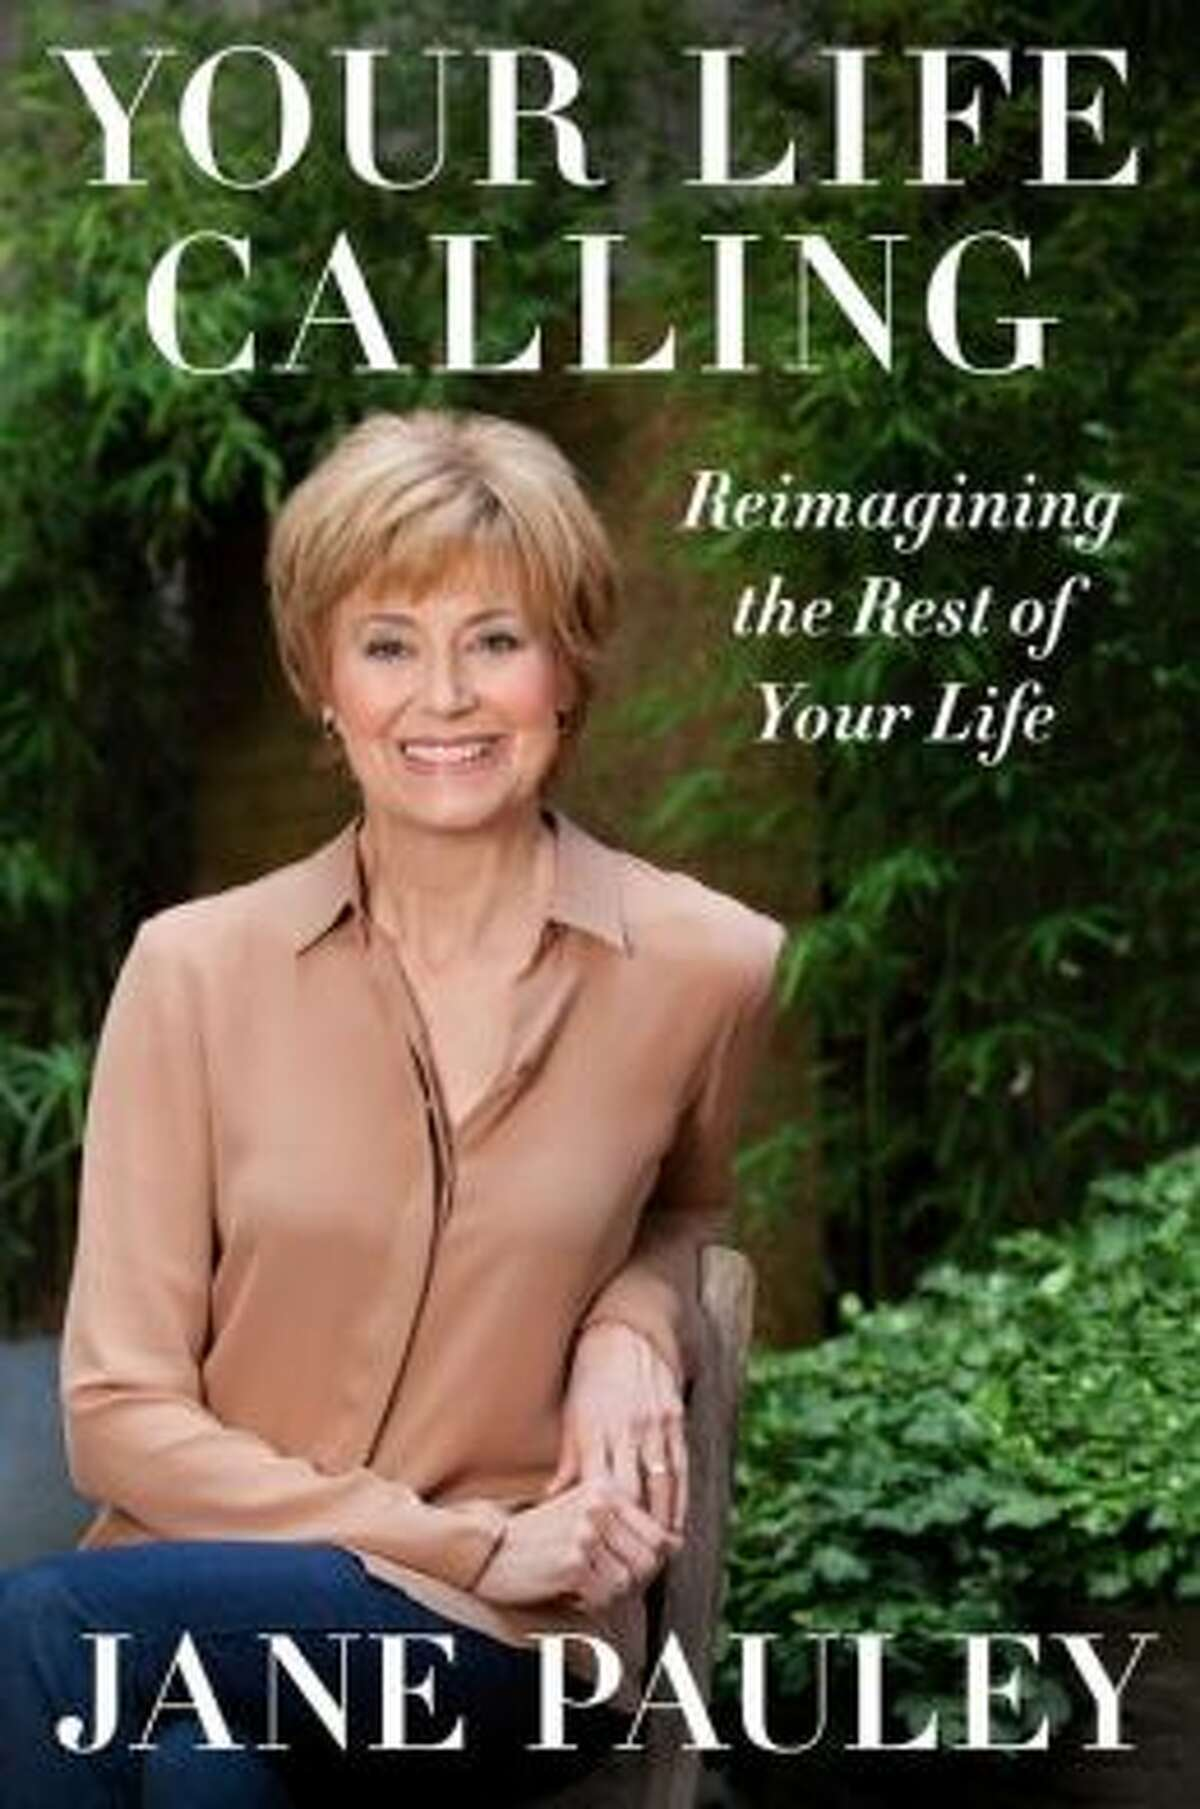 TV icon Jane Pauley and National Book Award winner Barry Lopez are among the more than 70 authors who will participate in the San Antonio Book Festival on April 5. The free daylong event, sponsored by the San Antonio Public Library Foundation, will be held at Central Library and the Southwest School of Art.